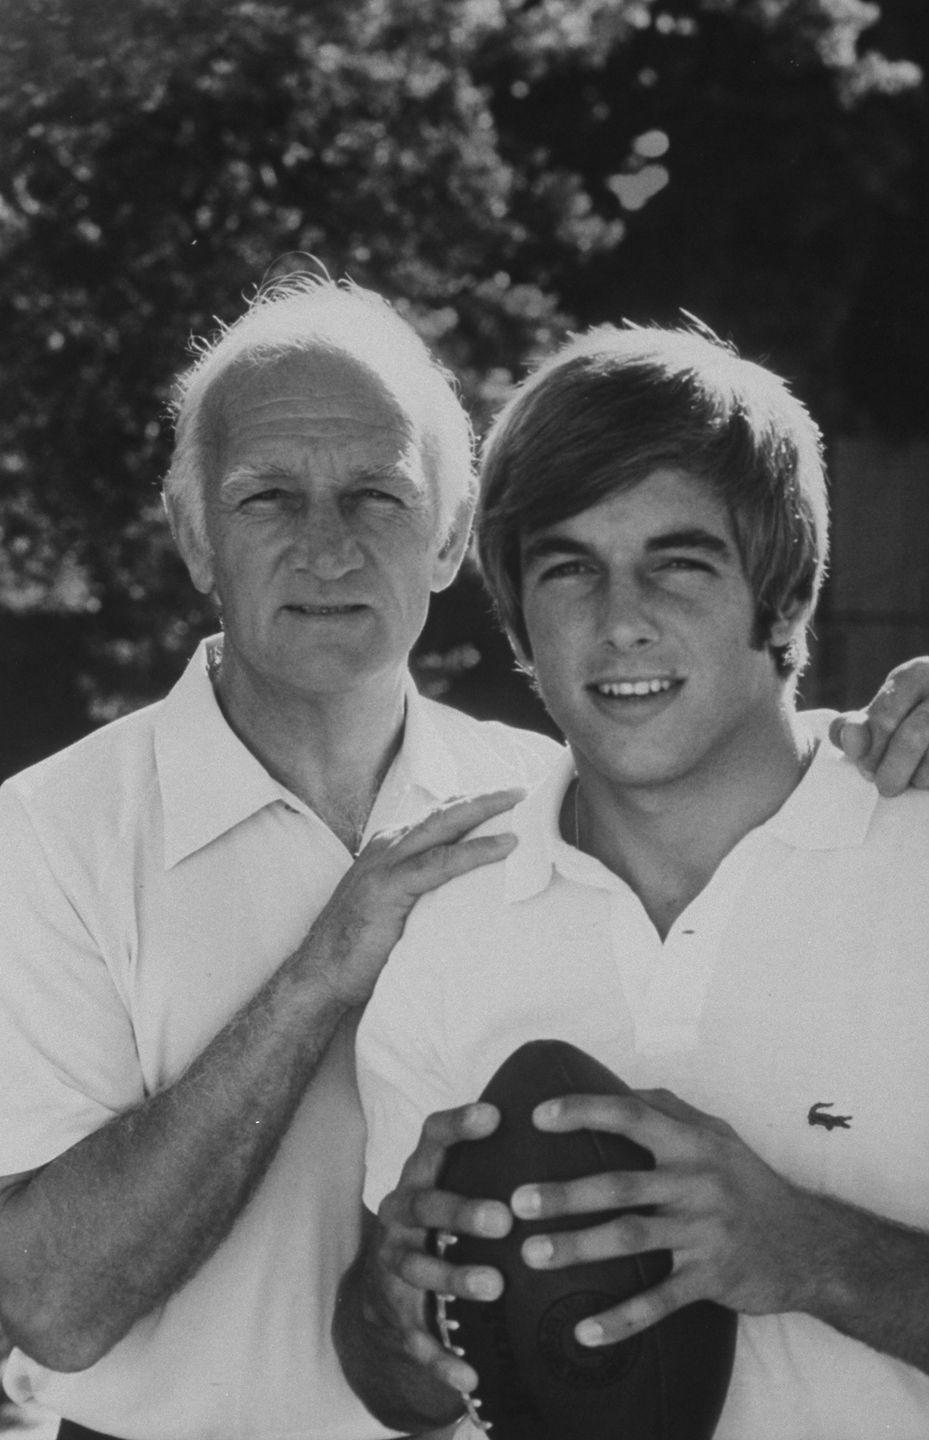 """<p>Mark Harmon poses next to his father (University of Michigan football star Tom Harmon) in the early '70s, when the actor was <a href=""""https://footballfoundation.org/hof_scholars.aspx?hof=779"""" rel=""""nofollow noopener"""" target=""""_blank"""" data-ylk=""""slk:quarterback at the University of California at Los Angeles"""" class=""""link rapid-noclick-resp"""">quarterback at the University of California at Los Angeles</a>. Mark turned down offers to play in the NFL and instead pursued a career in acting, which seems to be going well for him.</p>"""